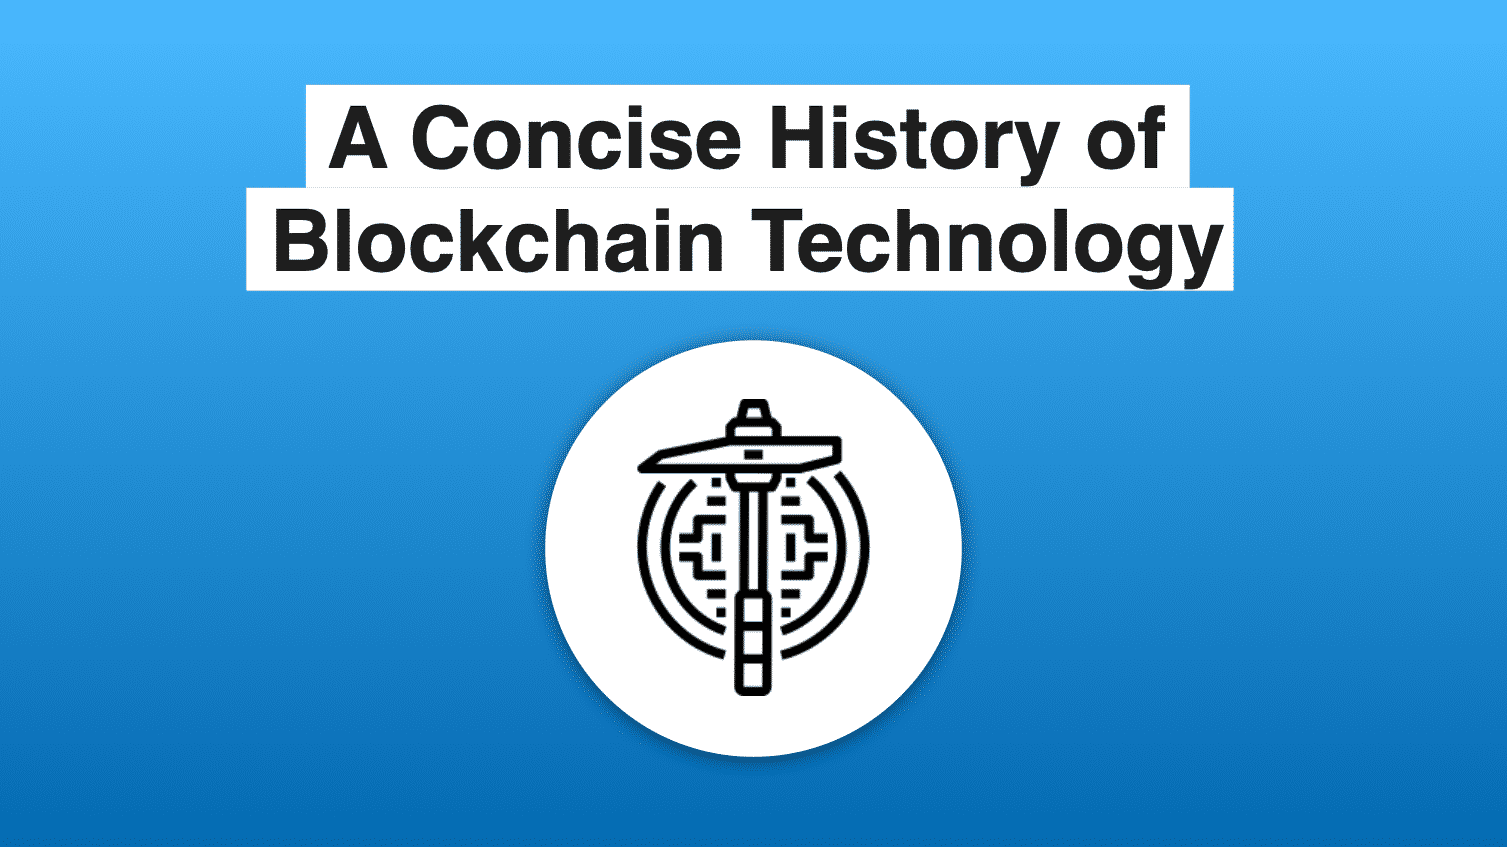 A Concise History of Blockchain Technology